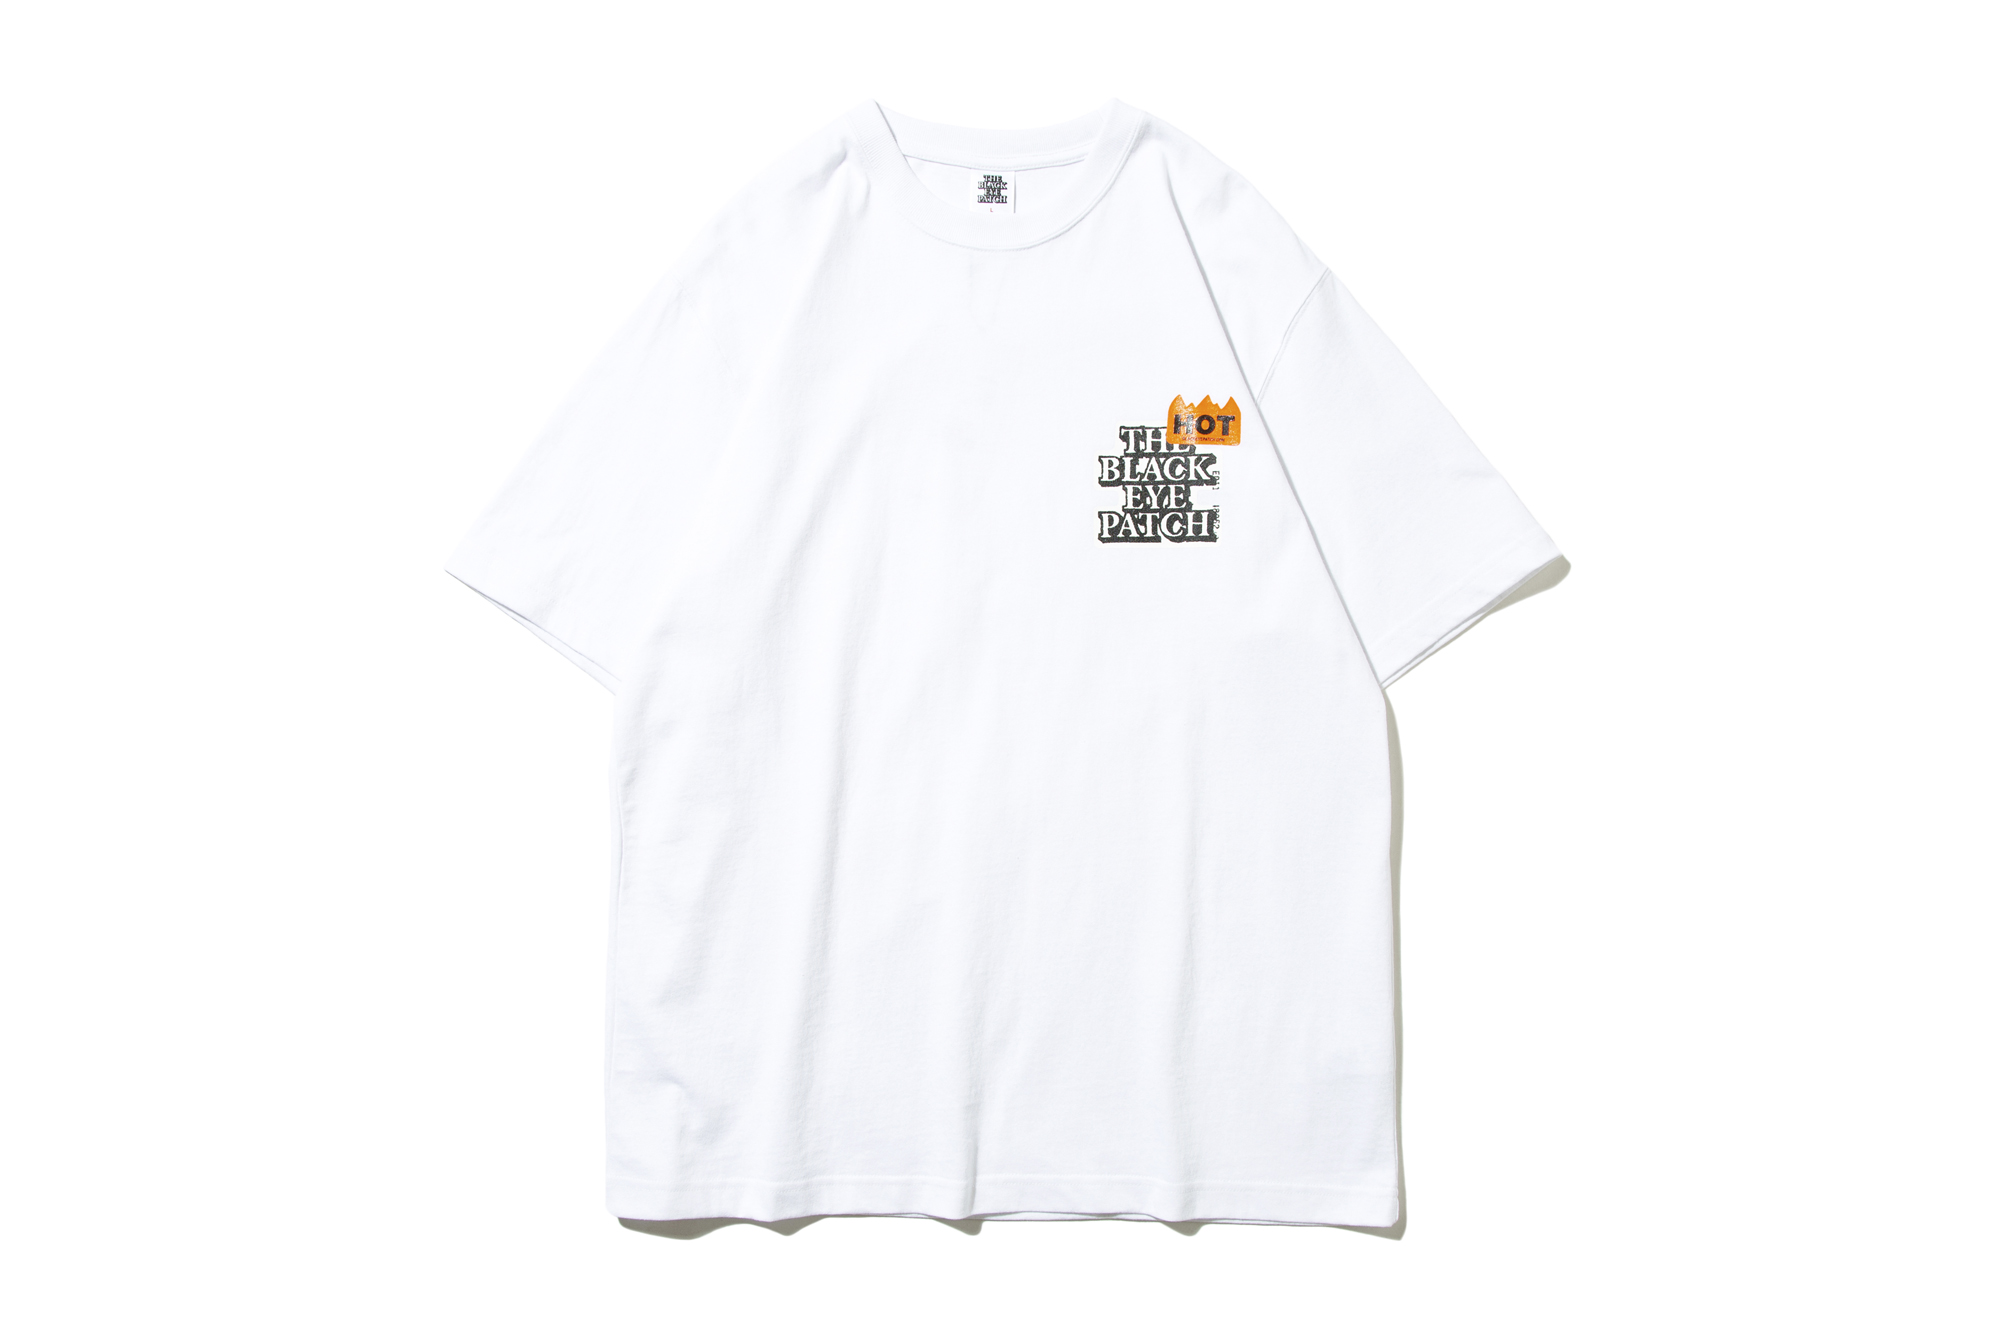 hot-label-tee-white_p2